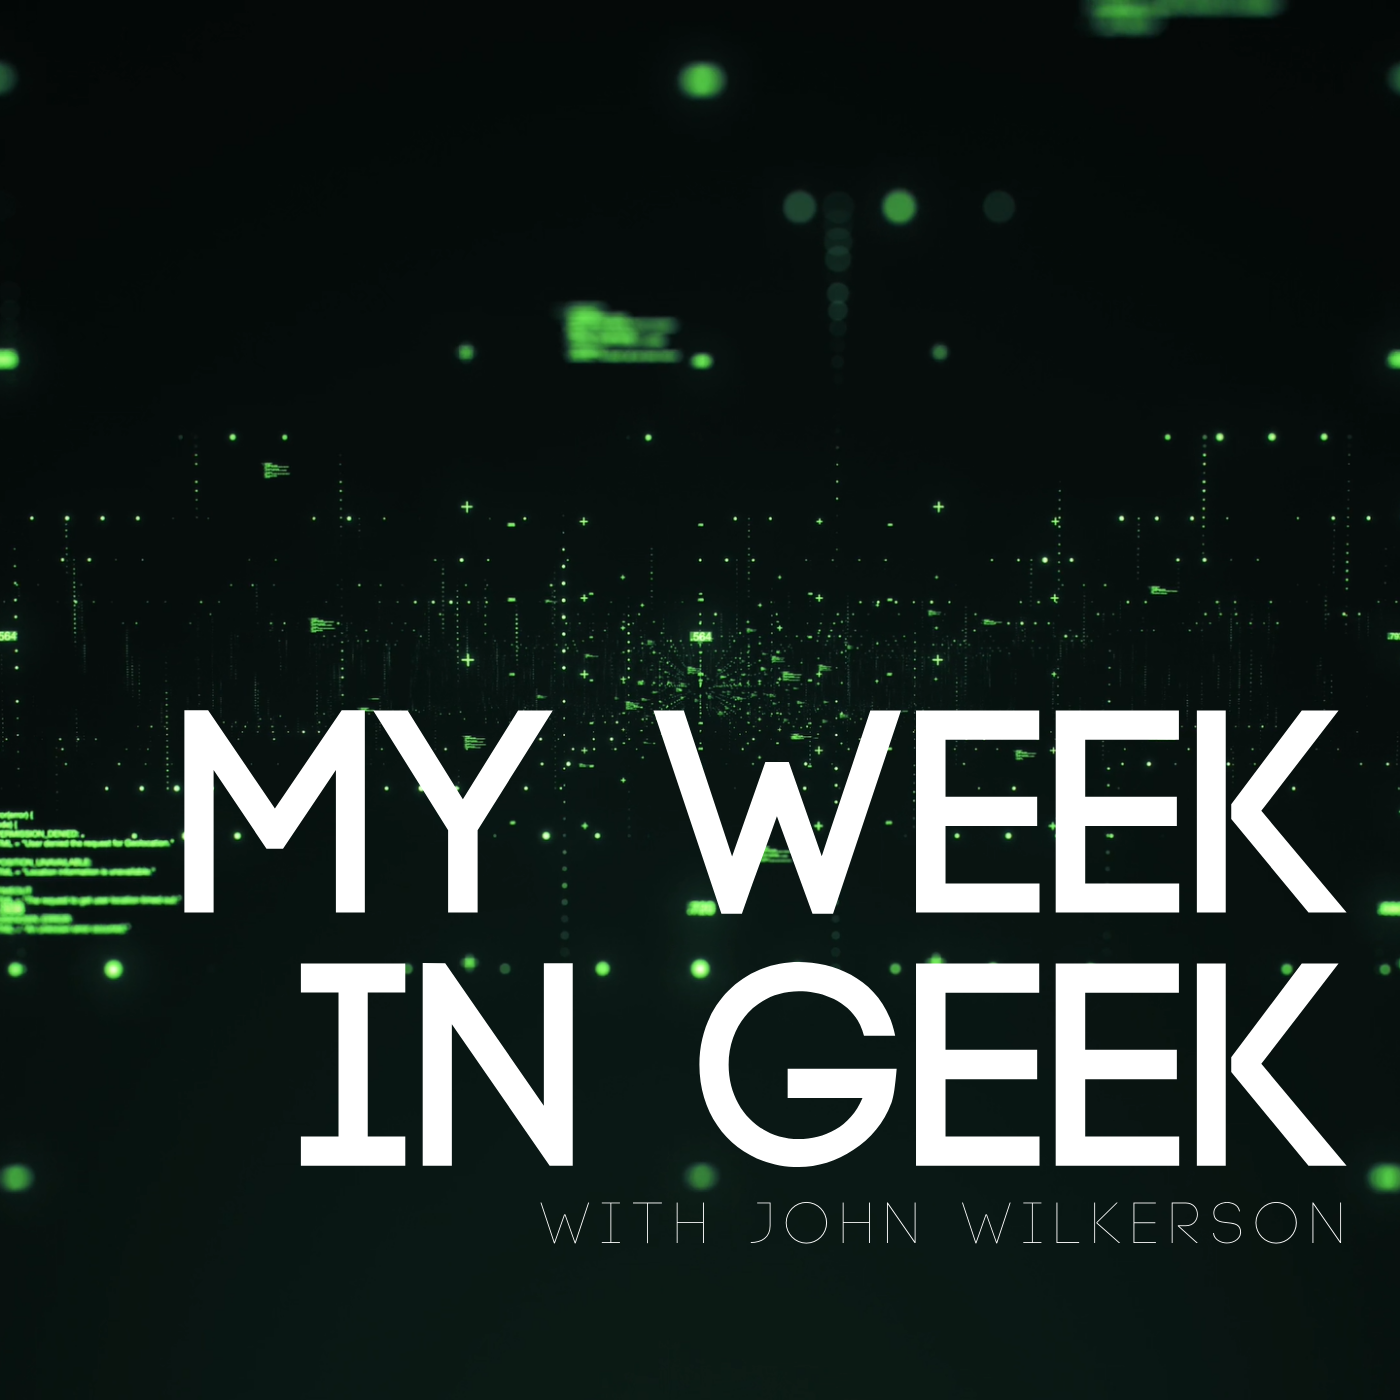 My Week in Geek